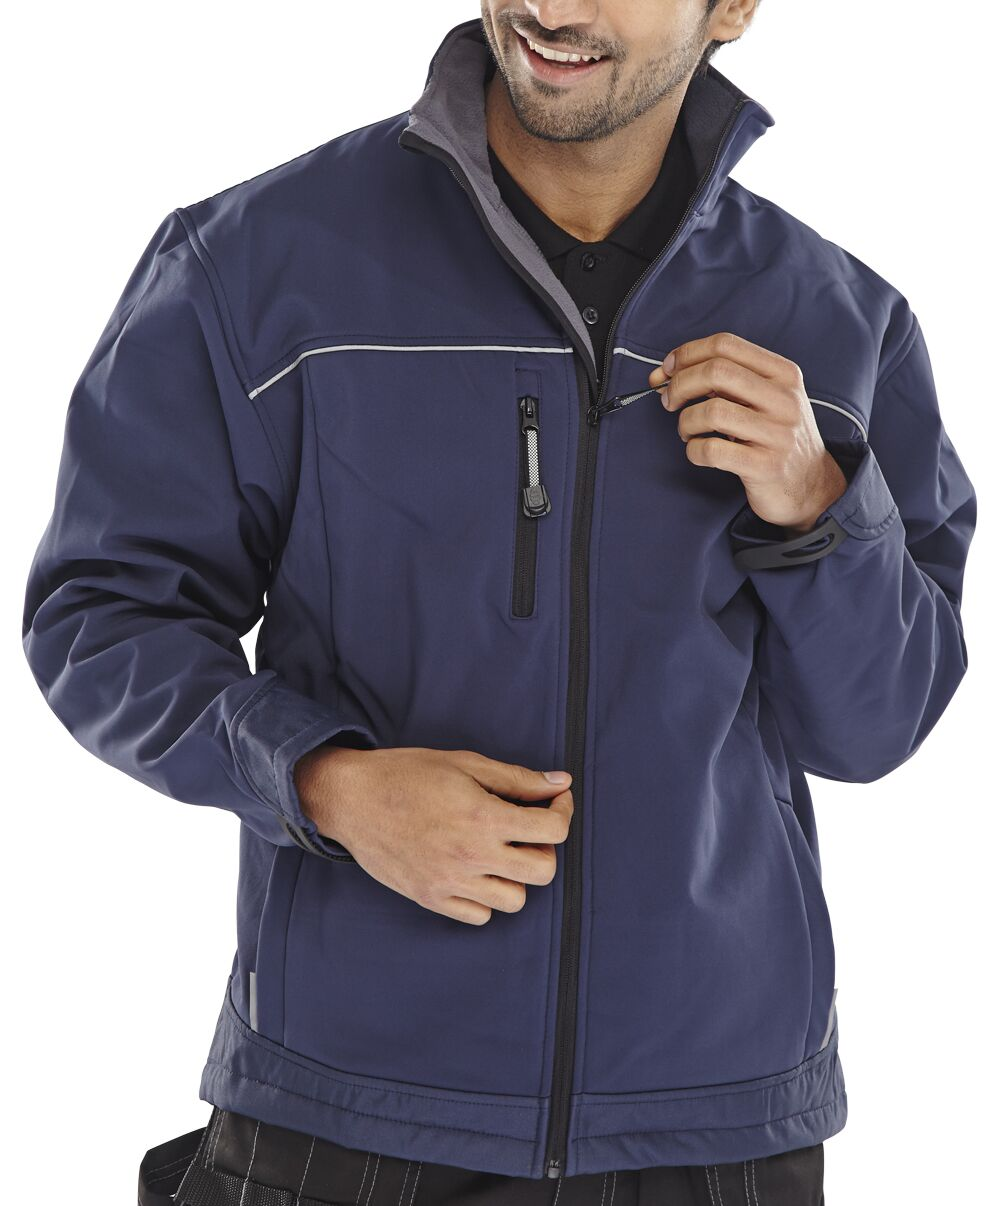 Body Protection Click Workwear Soft Shell Jacket Water Resistant Windproof 3XL Navy Ref SSJNXXXL *Approx 3 Day Leadtime*